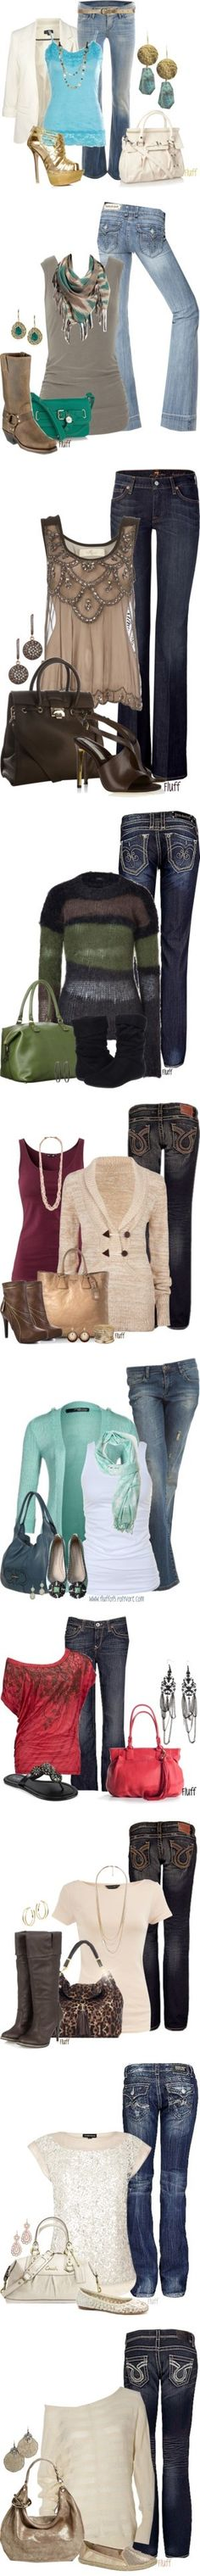 """Just Jeans"" by jennifer-mitchell310 on Polyvore"